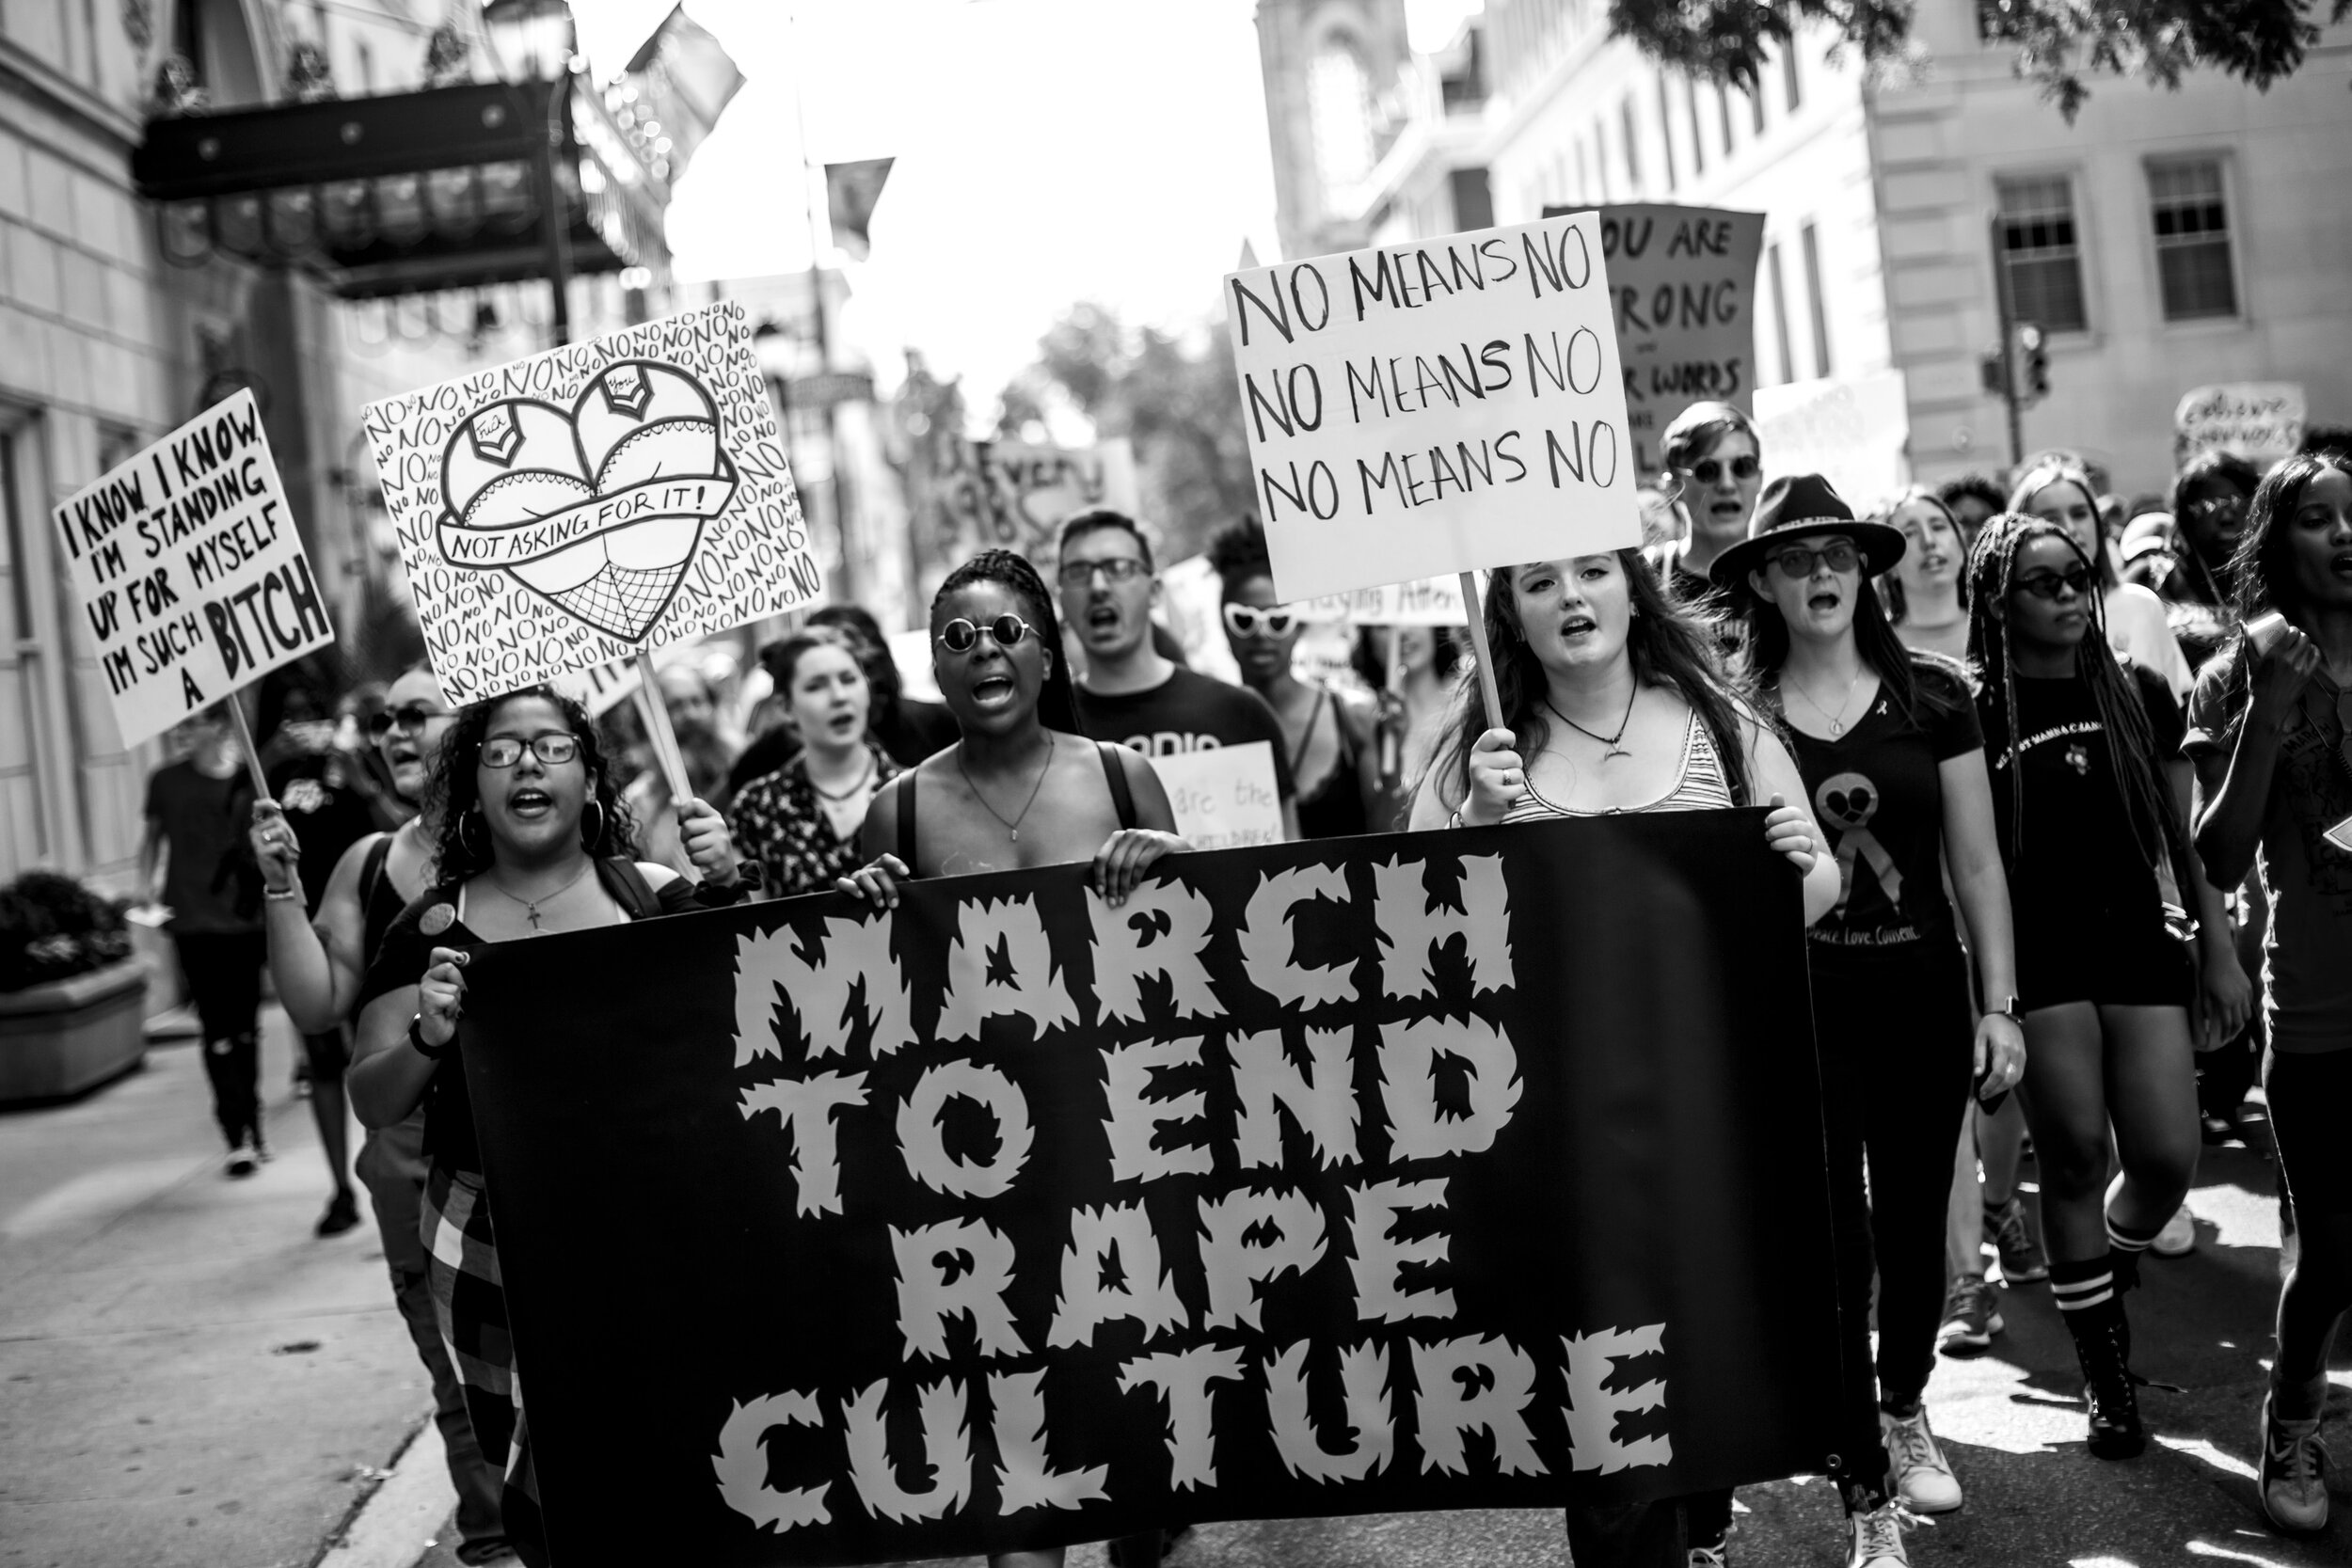 MarchToEndRapeCulture_2019_MikeArrison_BW_092919_0109.jpg